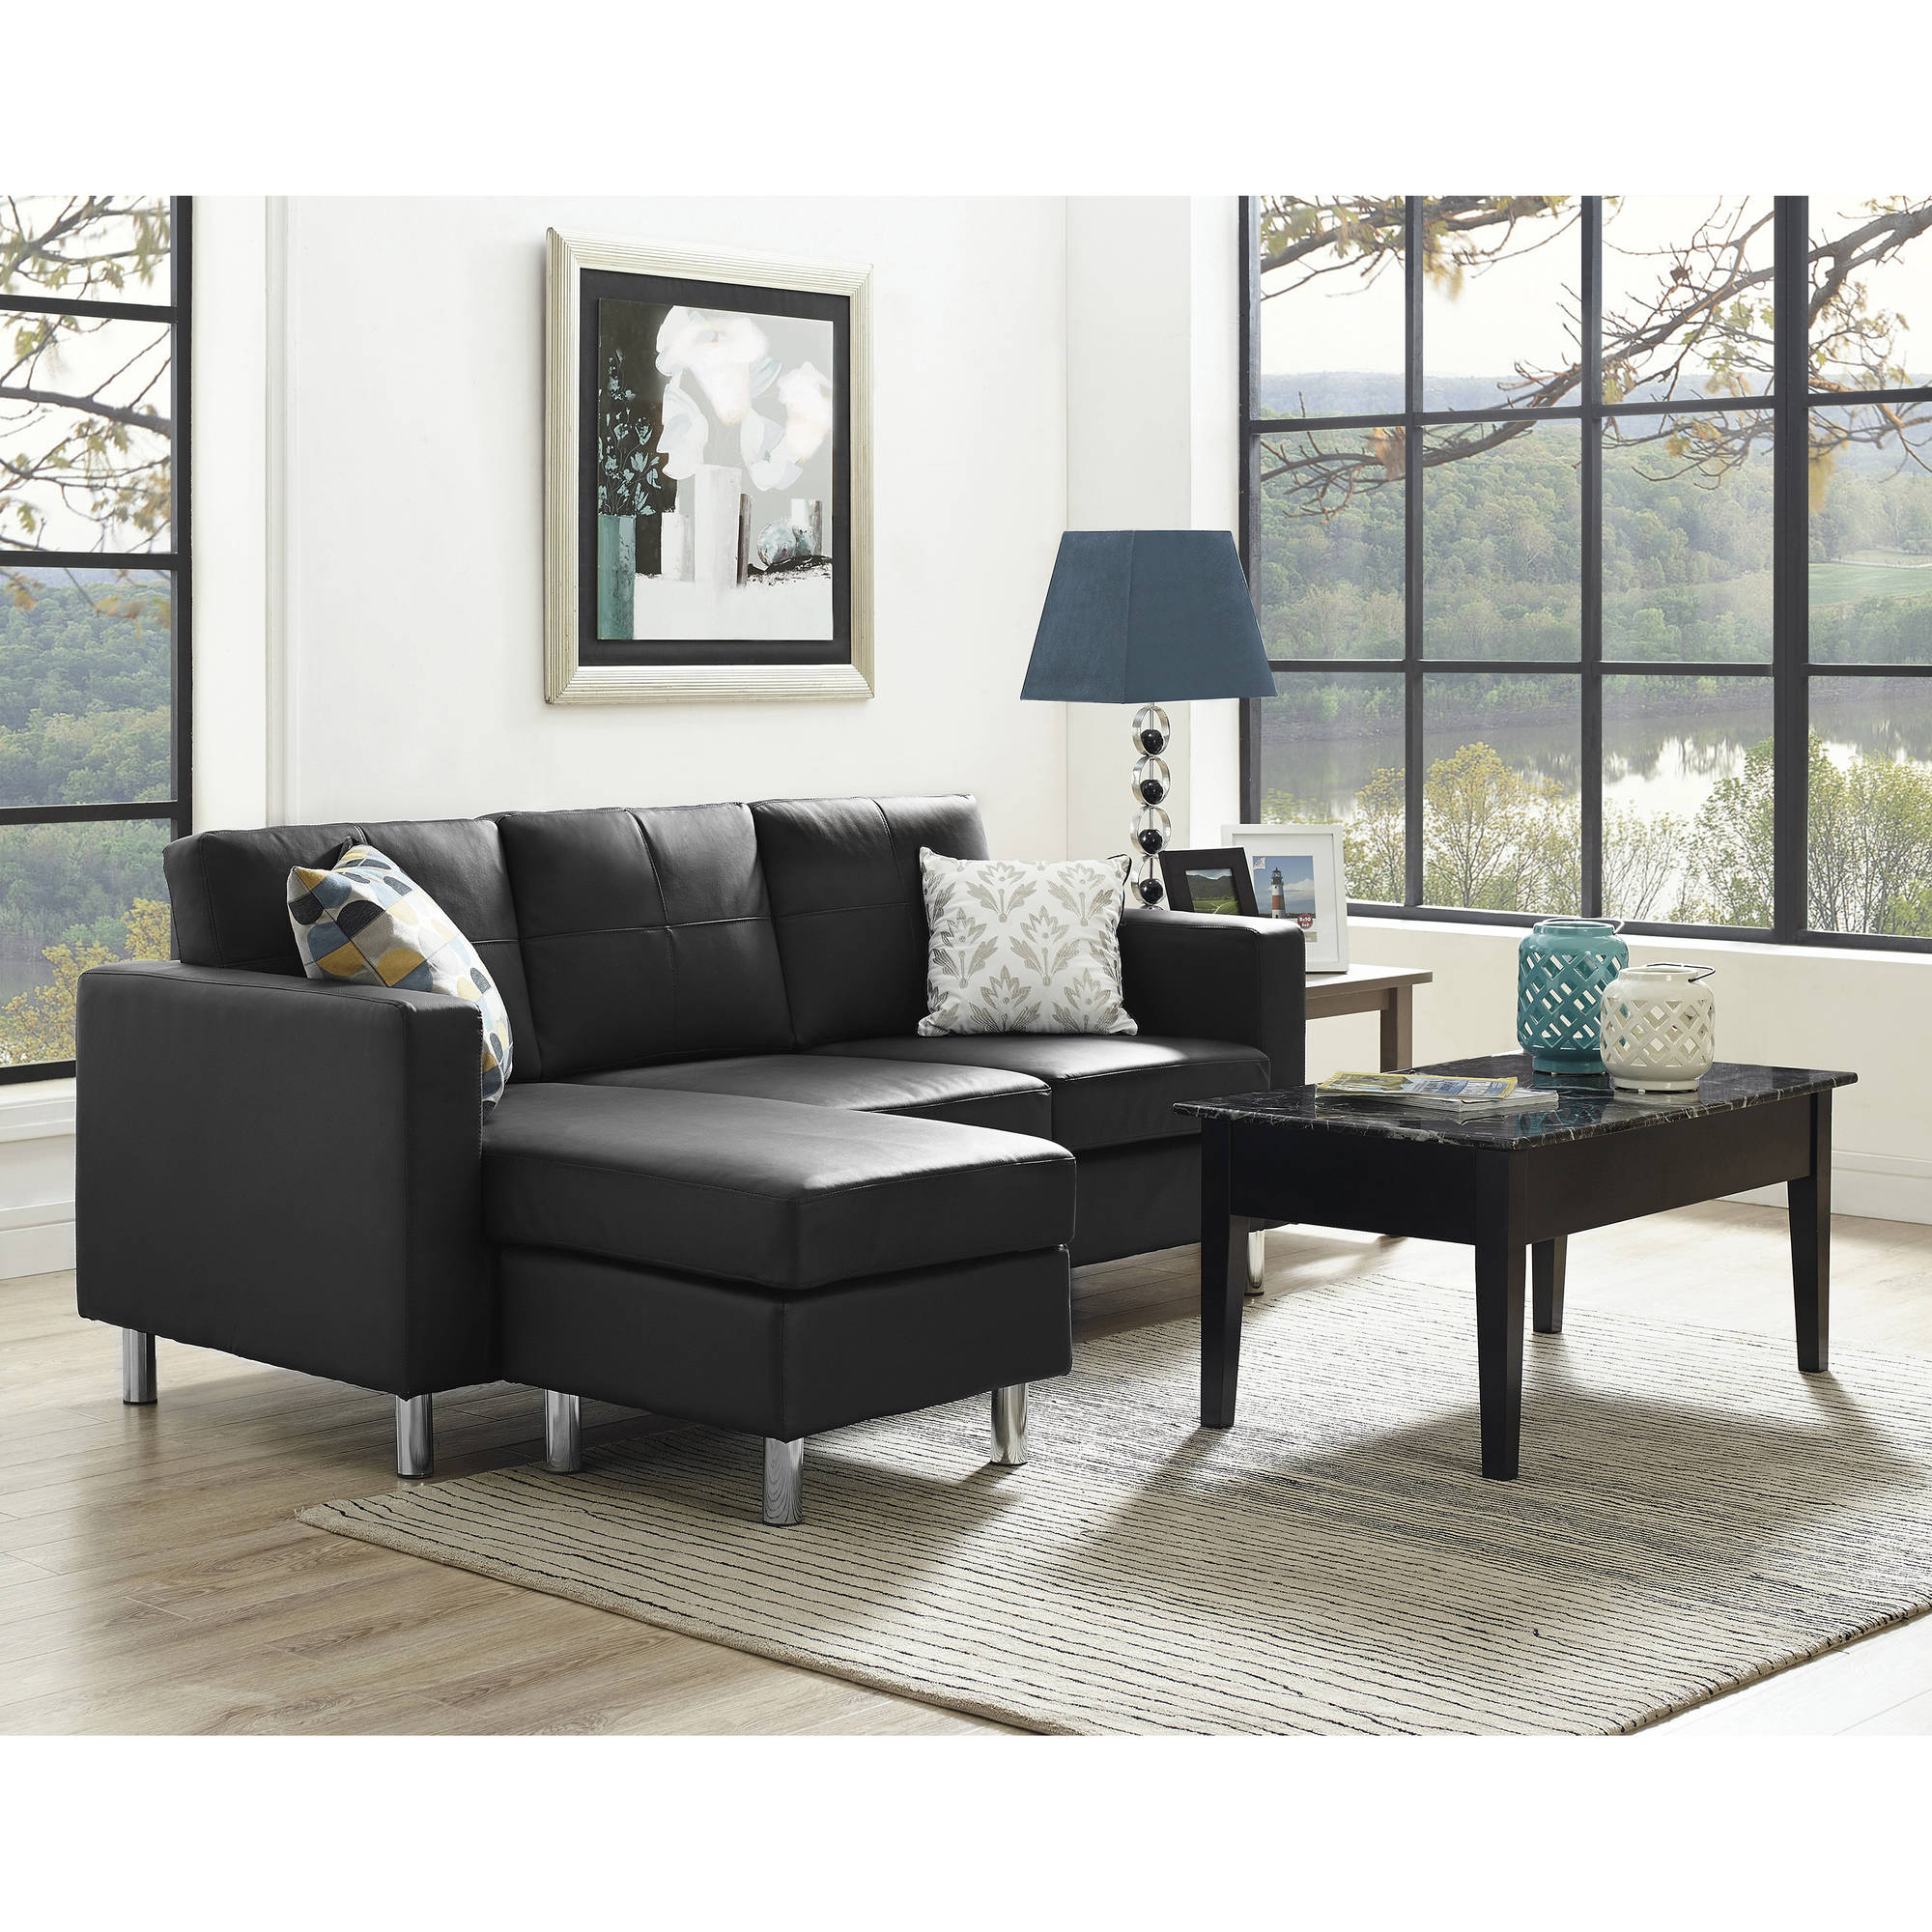 Costco Leather Sectional | Costco Futon | Sectional Sofas with Chaise